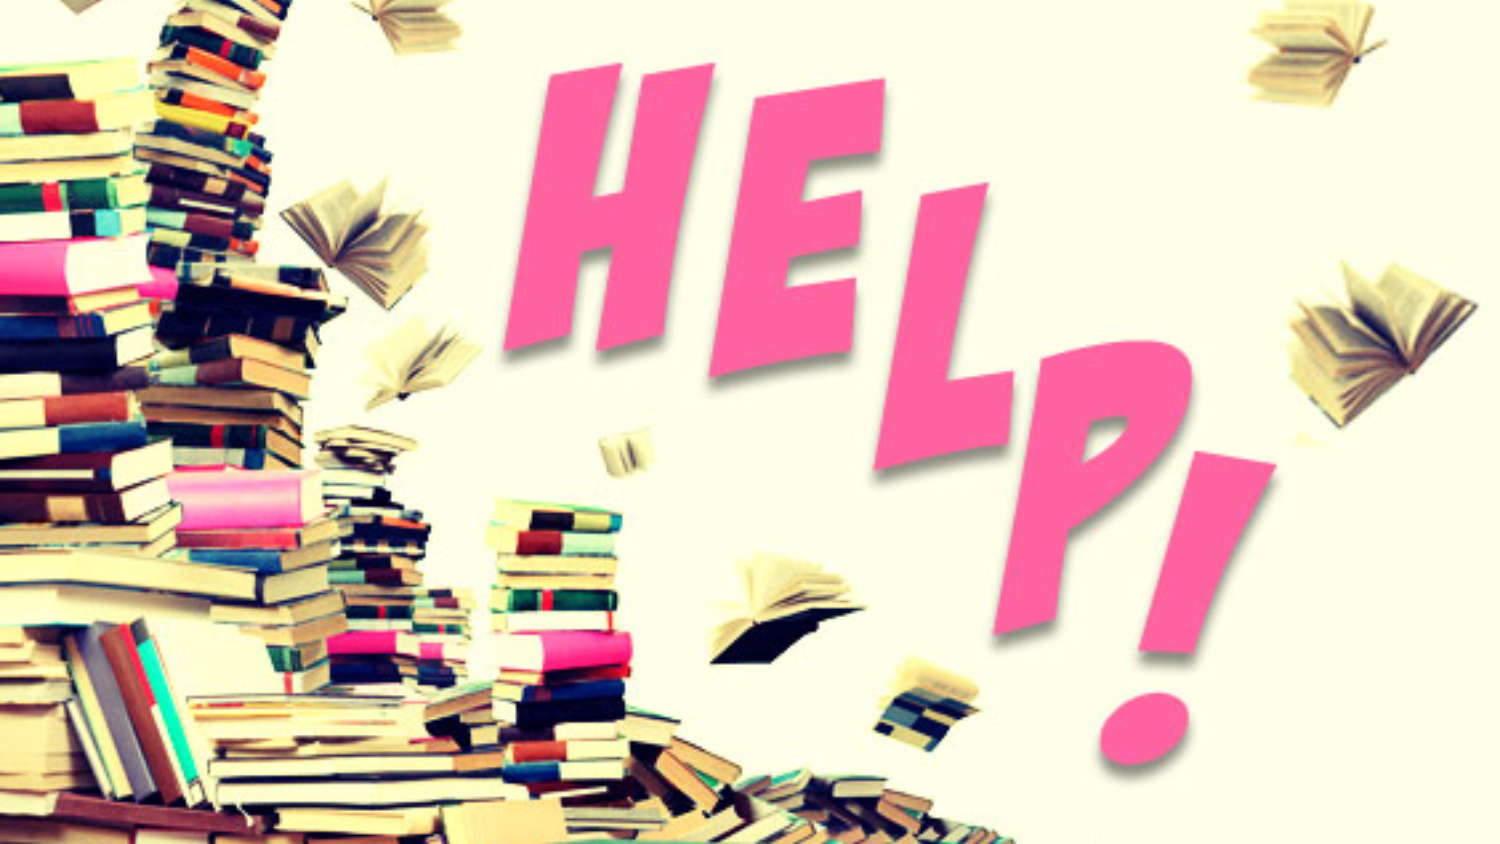 pile of books - help